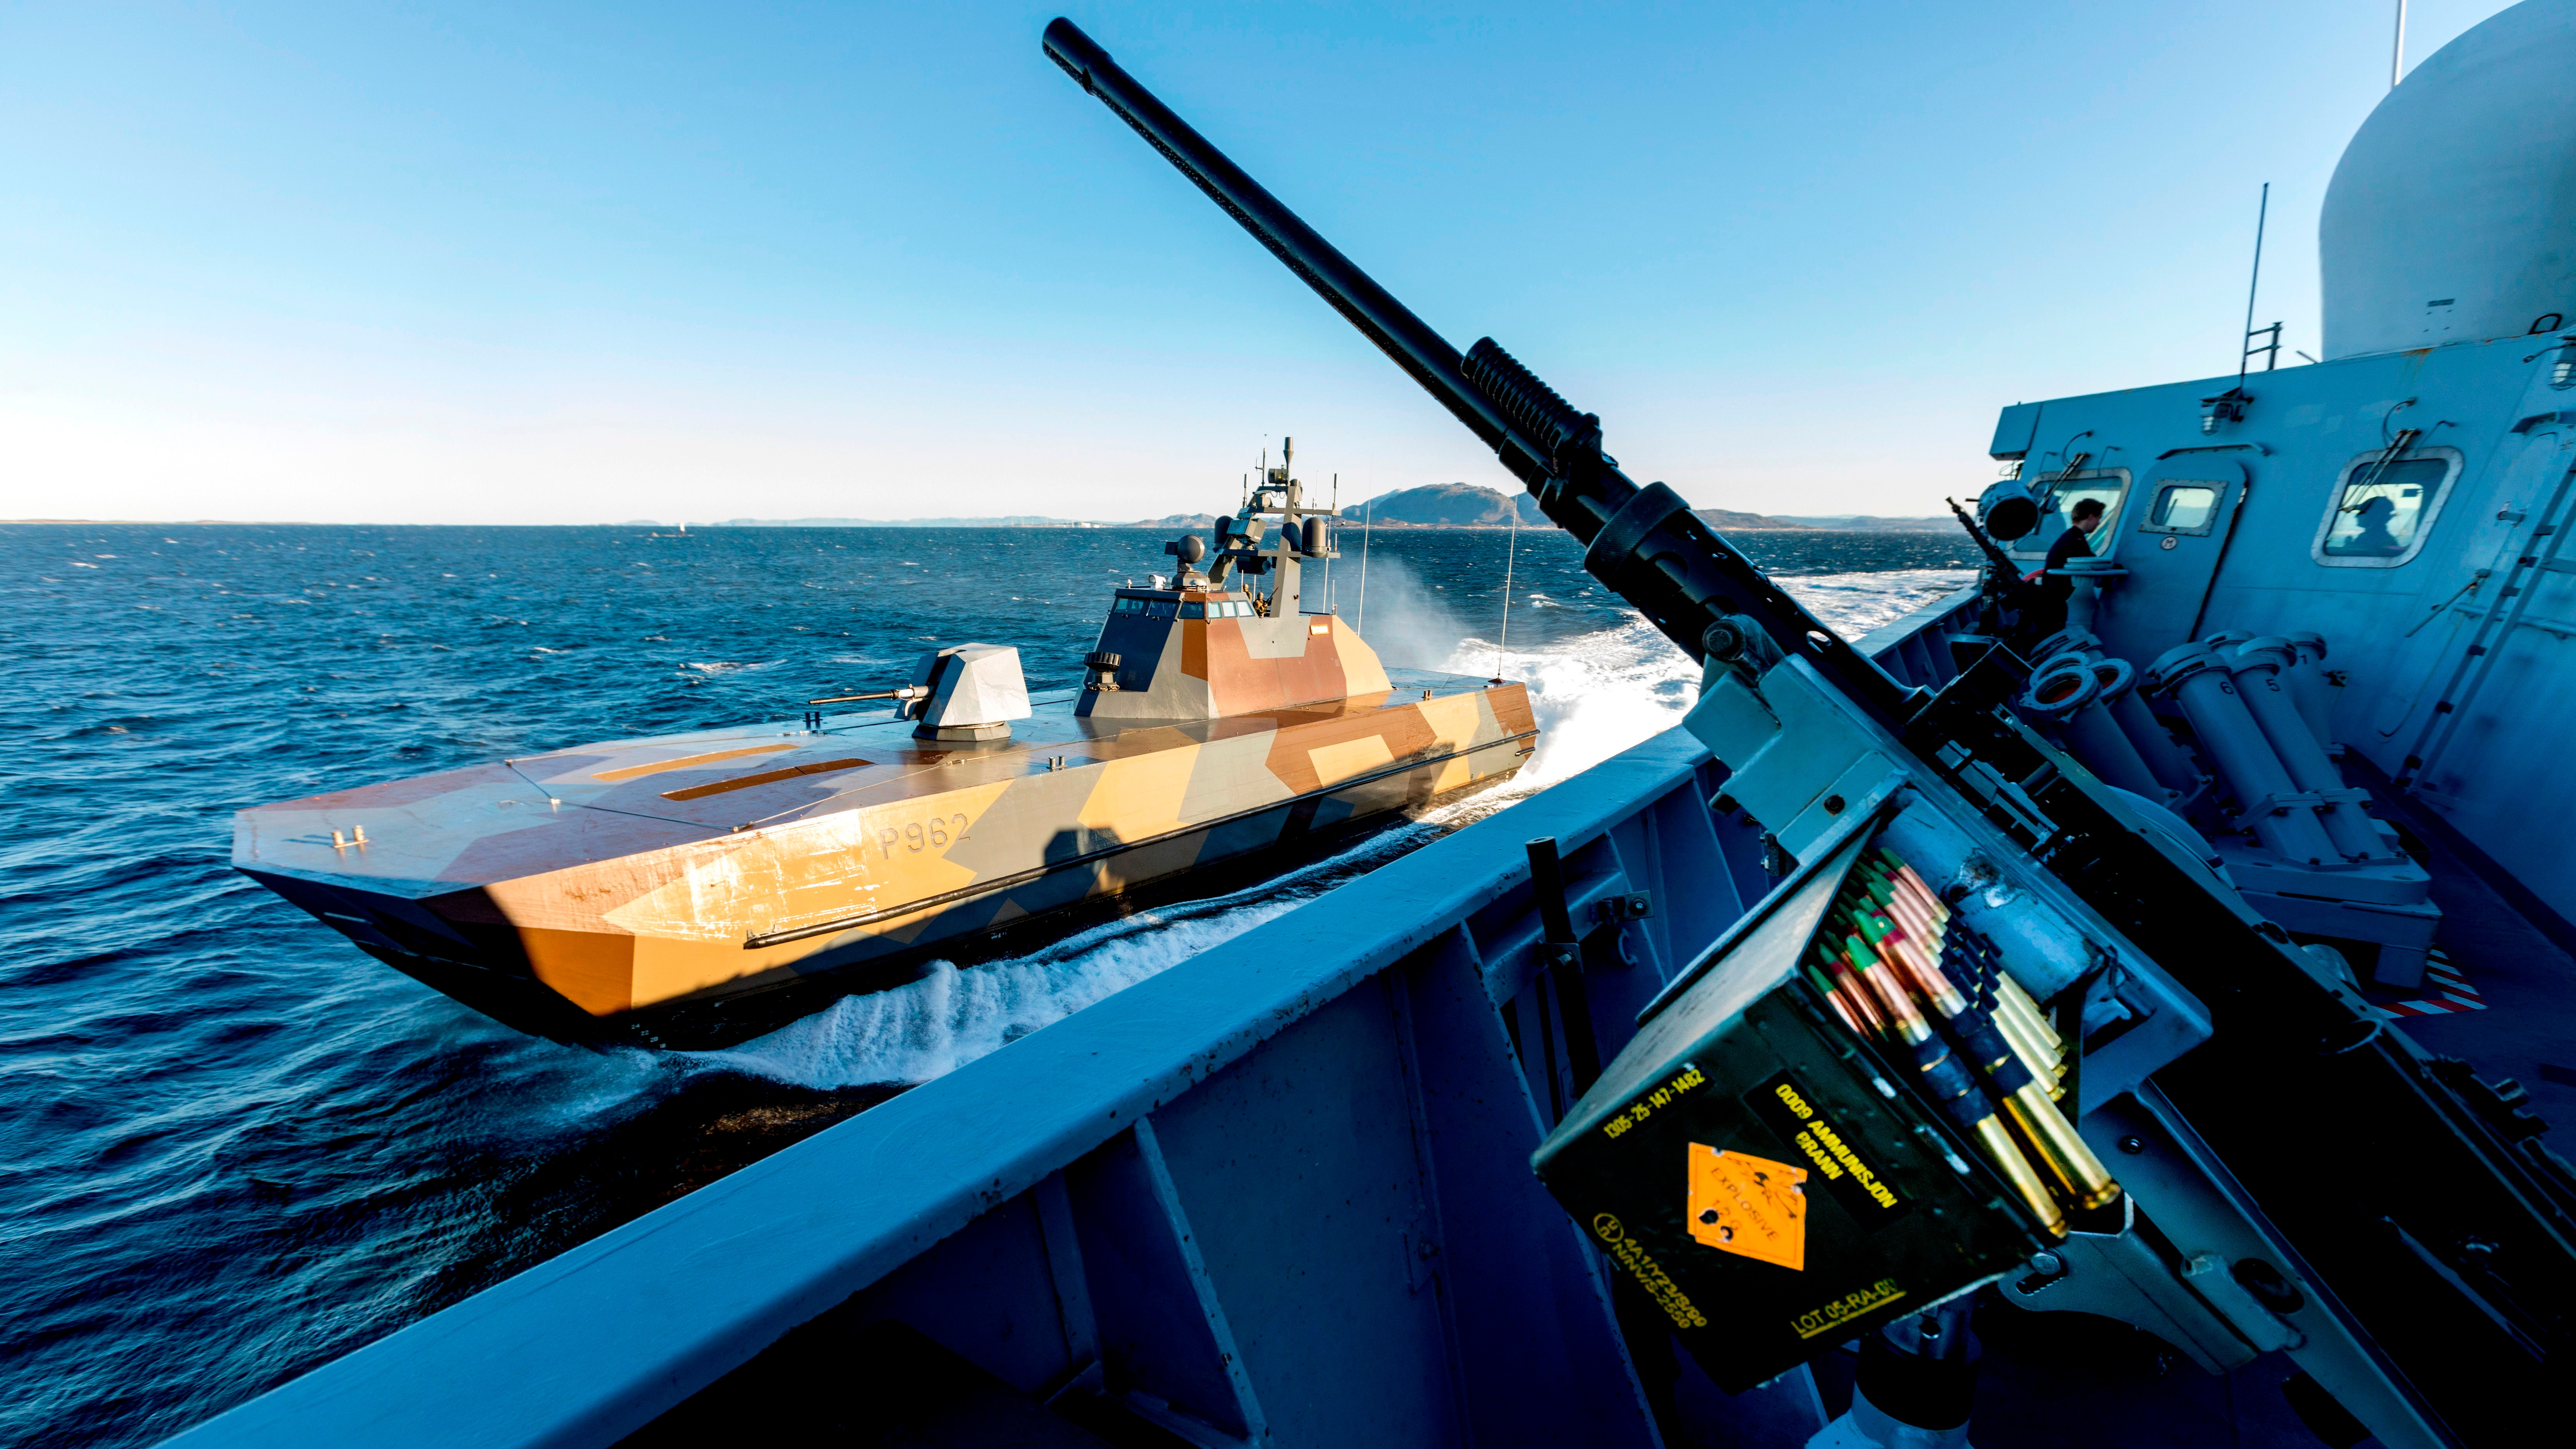 An Norwegian Motor Topedo Boat (MTB) KNM Skudd is pictured during the NATO-led military exercise Trident Juncture 2018 on October 29, 2018 off the coast of Trondelag in central Norway. - NATO's biggest military exercises since the end of the Cold War, dubbed Trident Juncture 18, take place in Norway from October 25 to November 7 in what will be a massive display of strength. (GORM KALLESTAD/AFP/Getty Images)